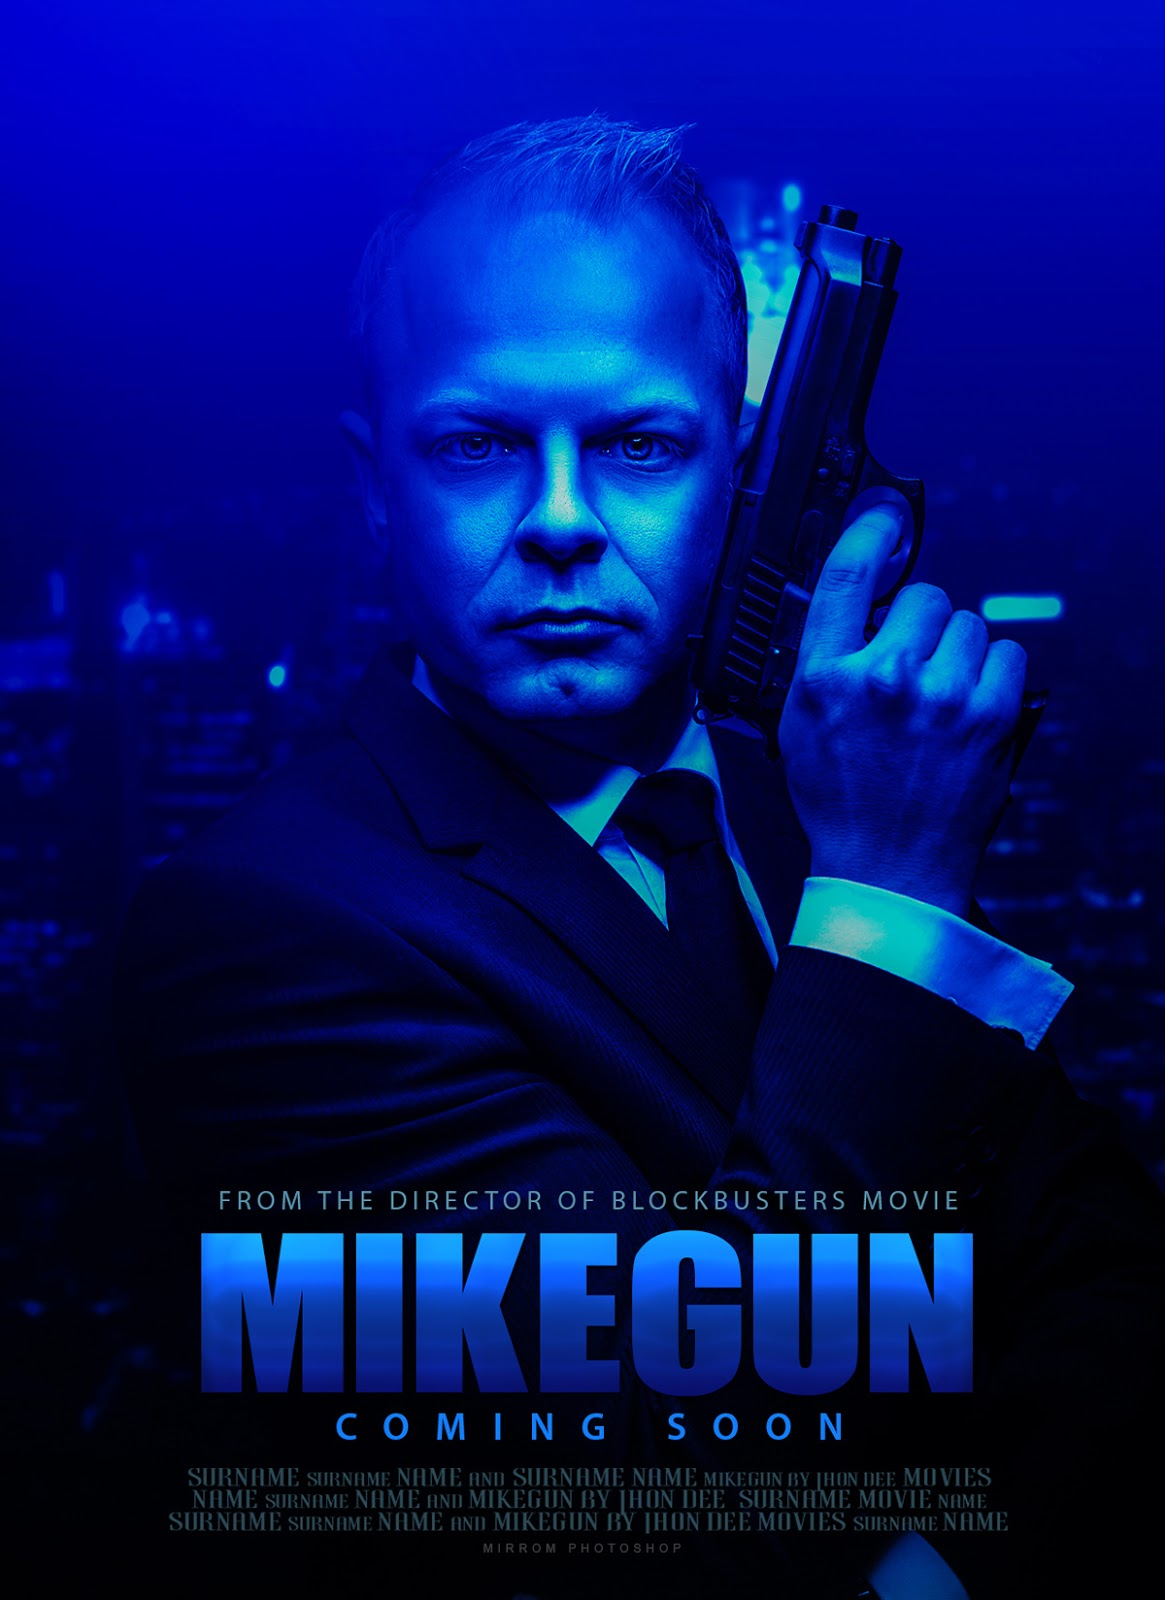 Make a Blue Tone Movie Poster Concept in Photoshop